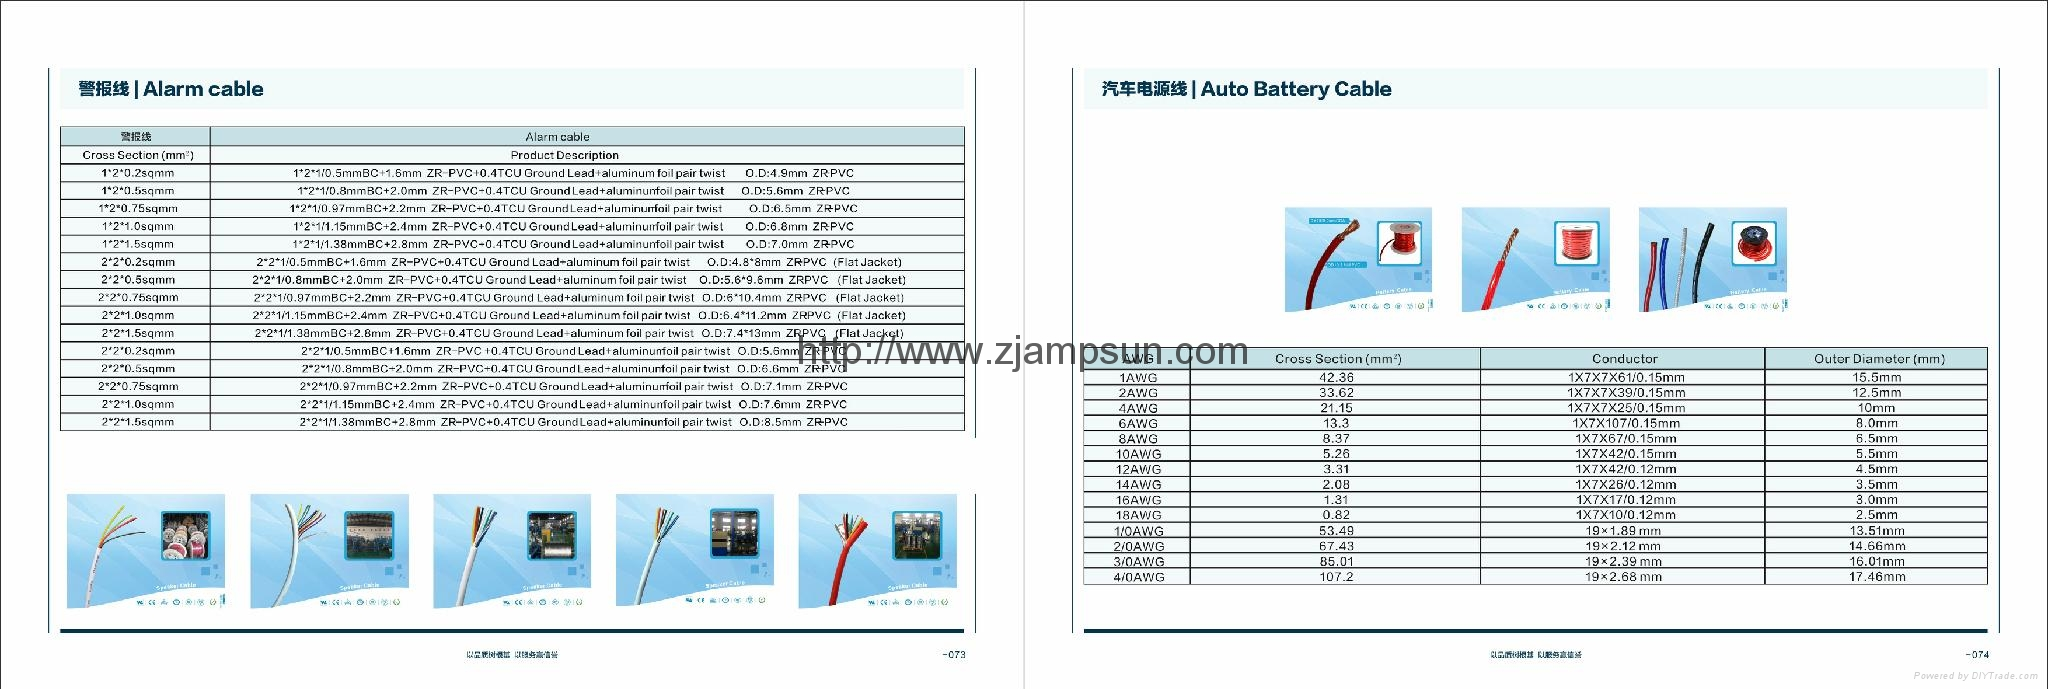 alarm cable ,auto battery cable etc.